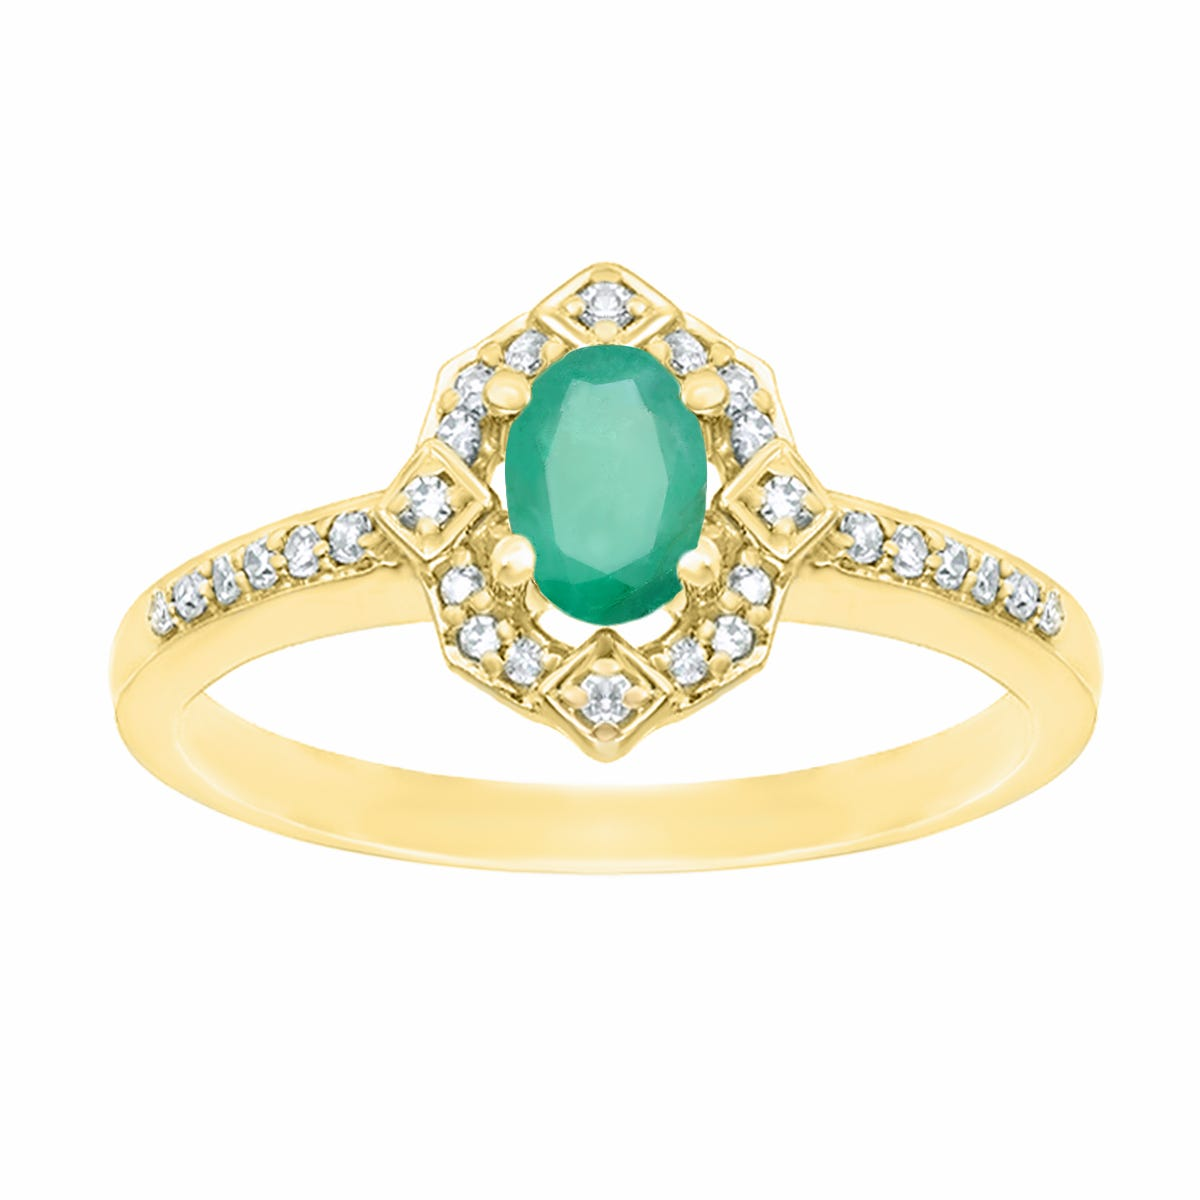 Oval Emerald and Diamond Ring 1/8ctw in 10k Yellow Gold